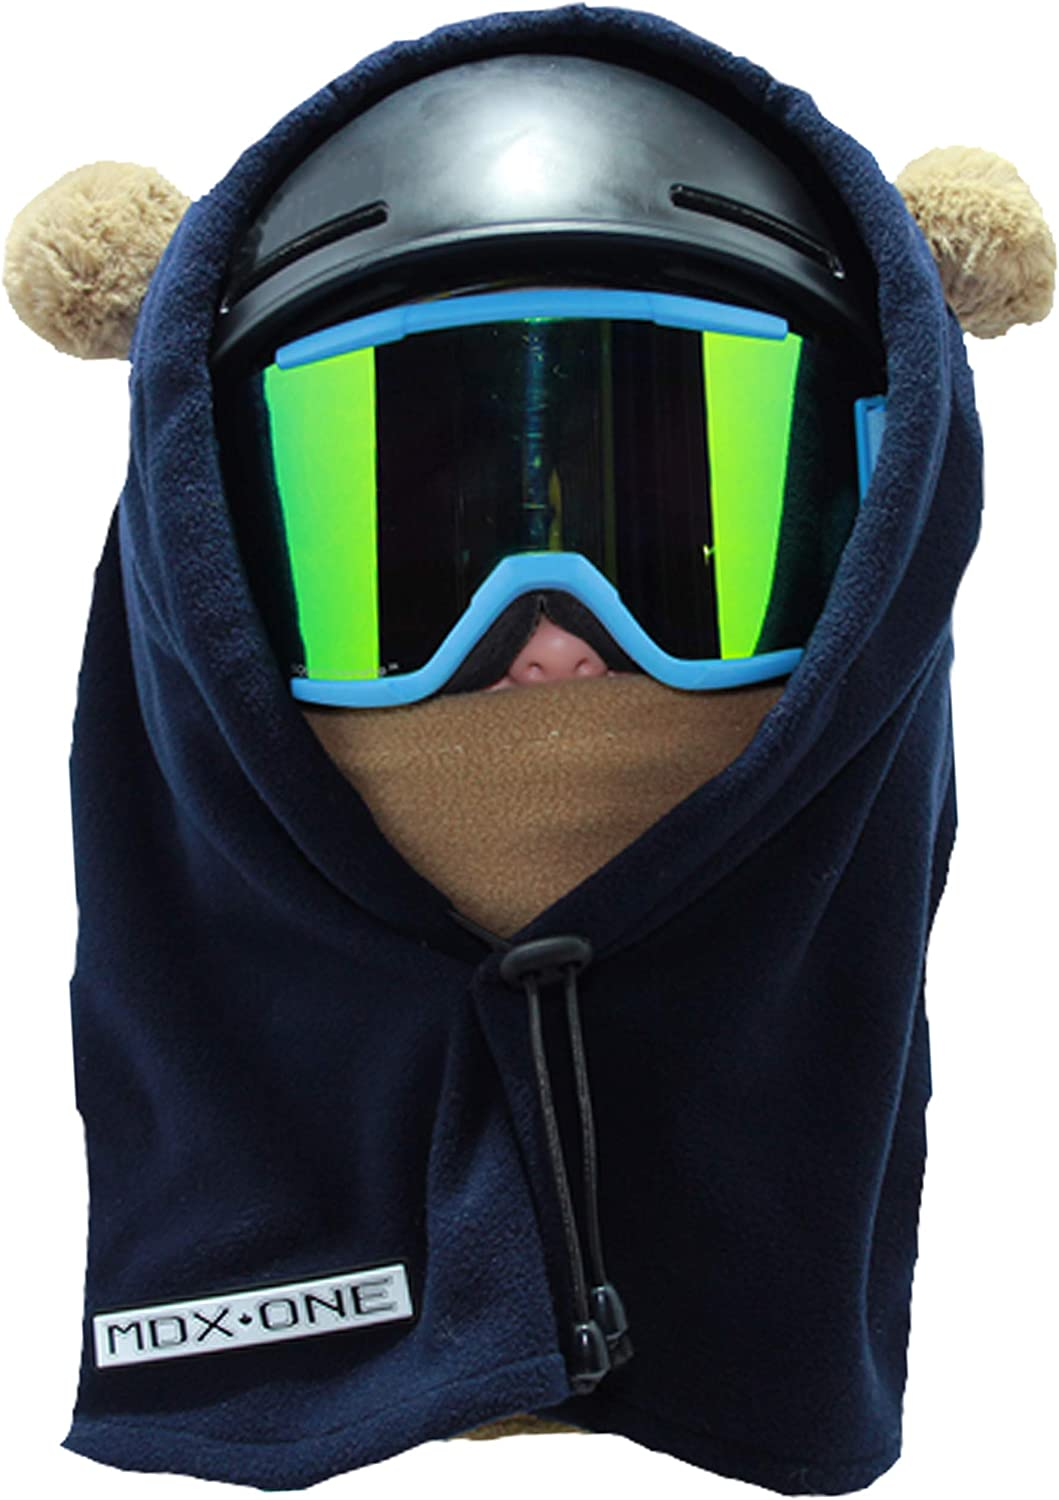 MDXONE Kids Balaclava Over The Helmet Children face mask with Pompoms